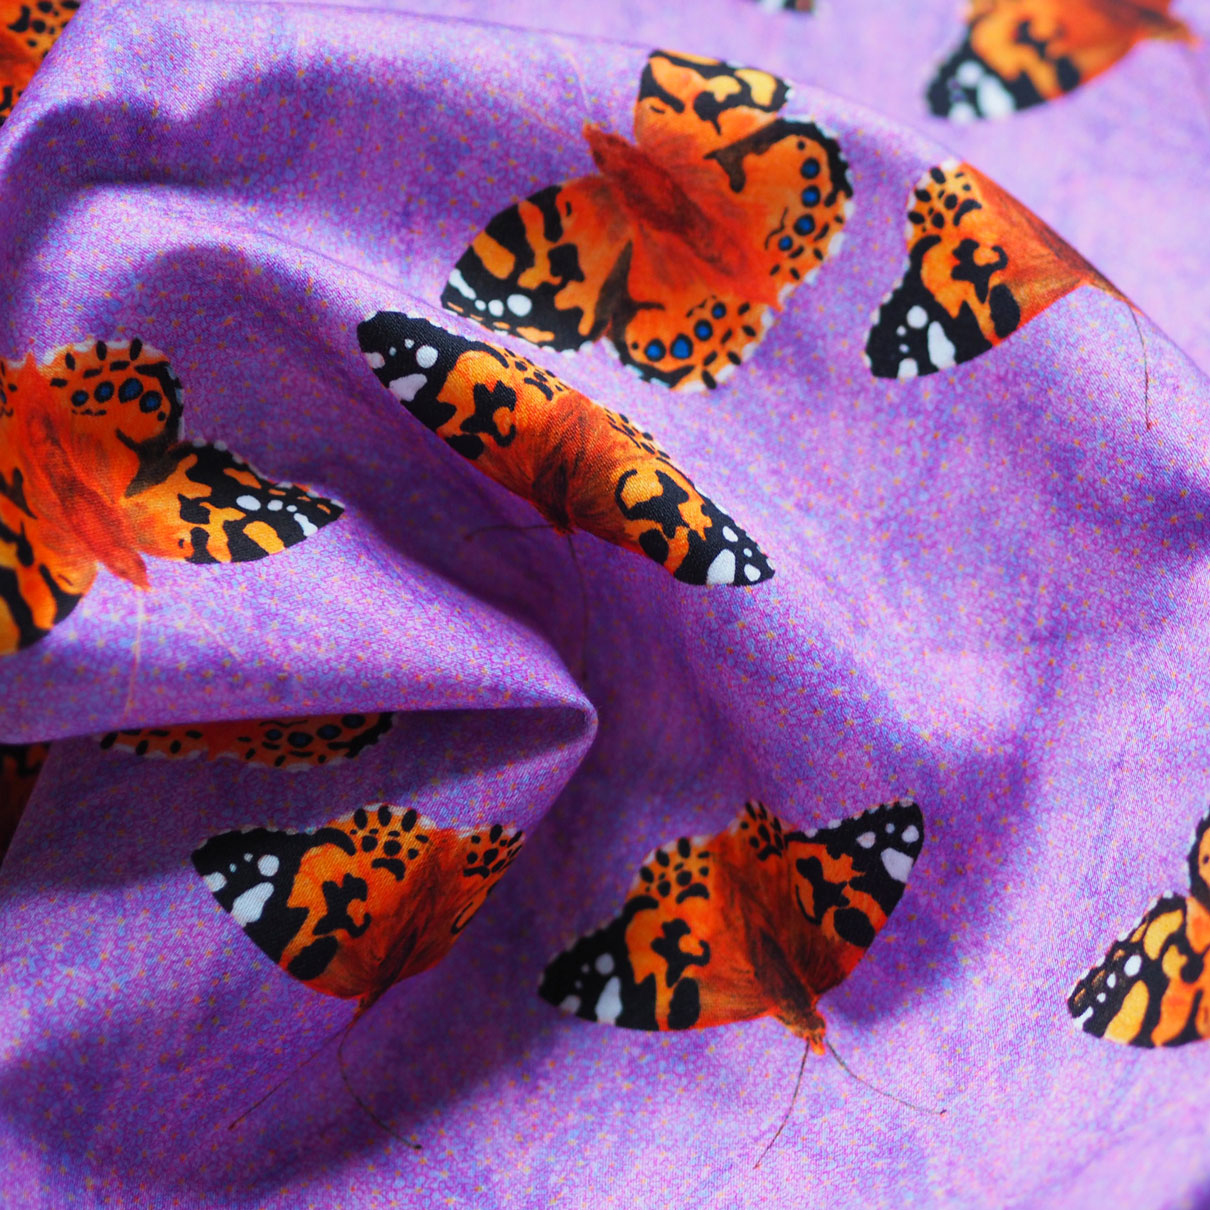 Painted Lady Repeat - Printed to order on Satin Cotton -  Shop Now